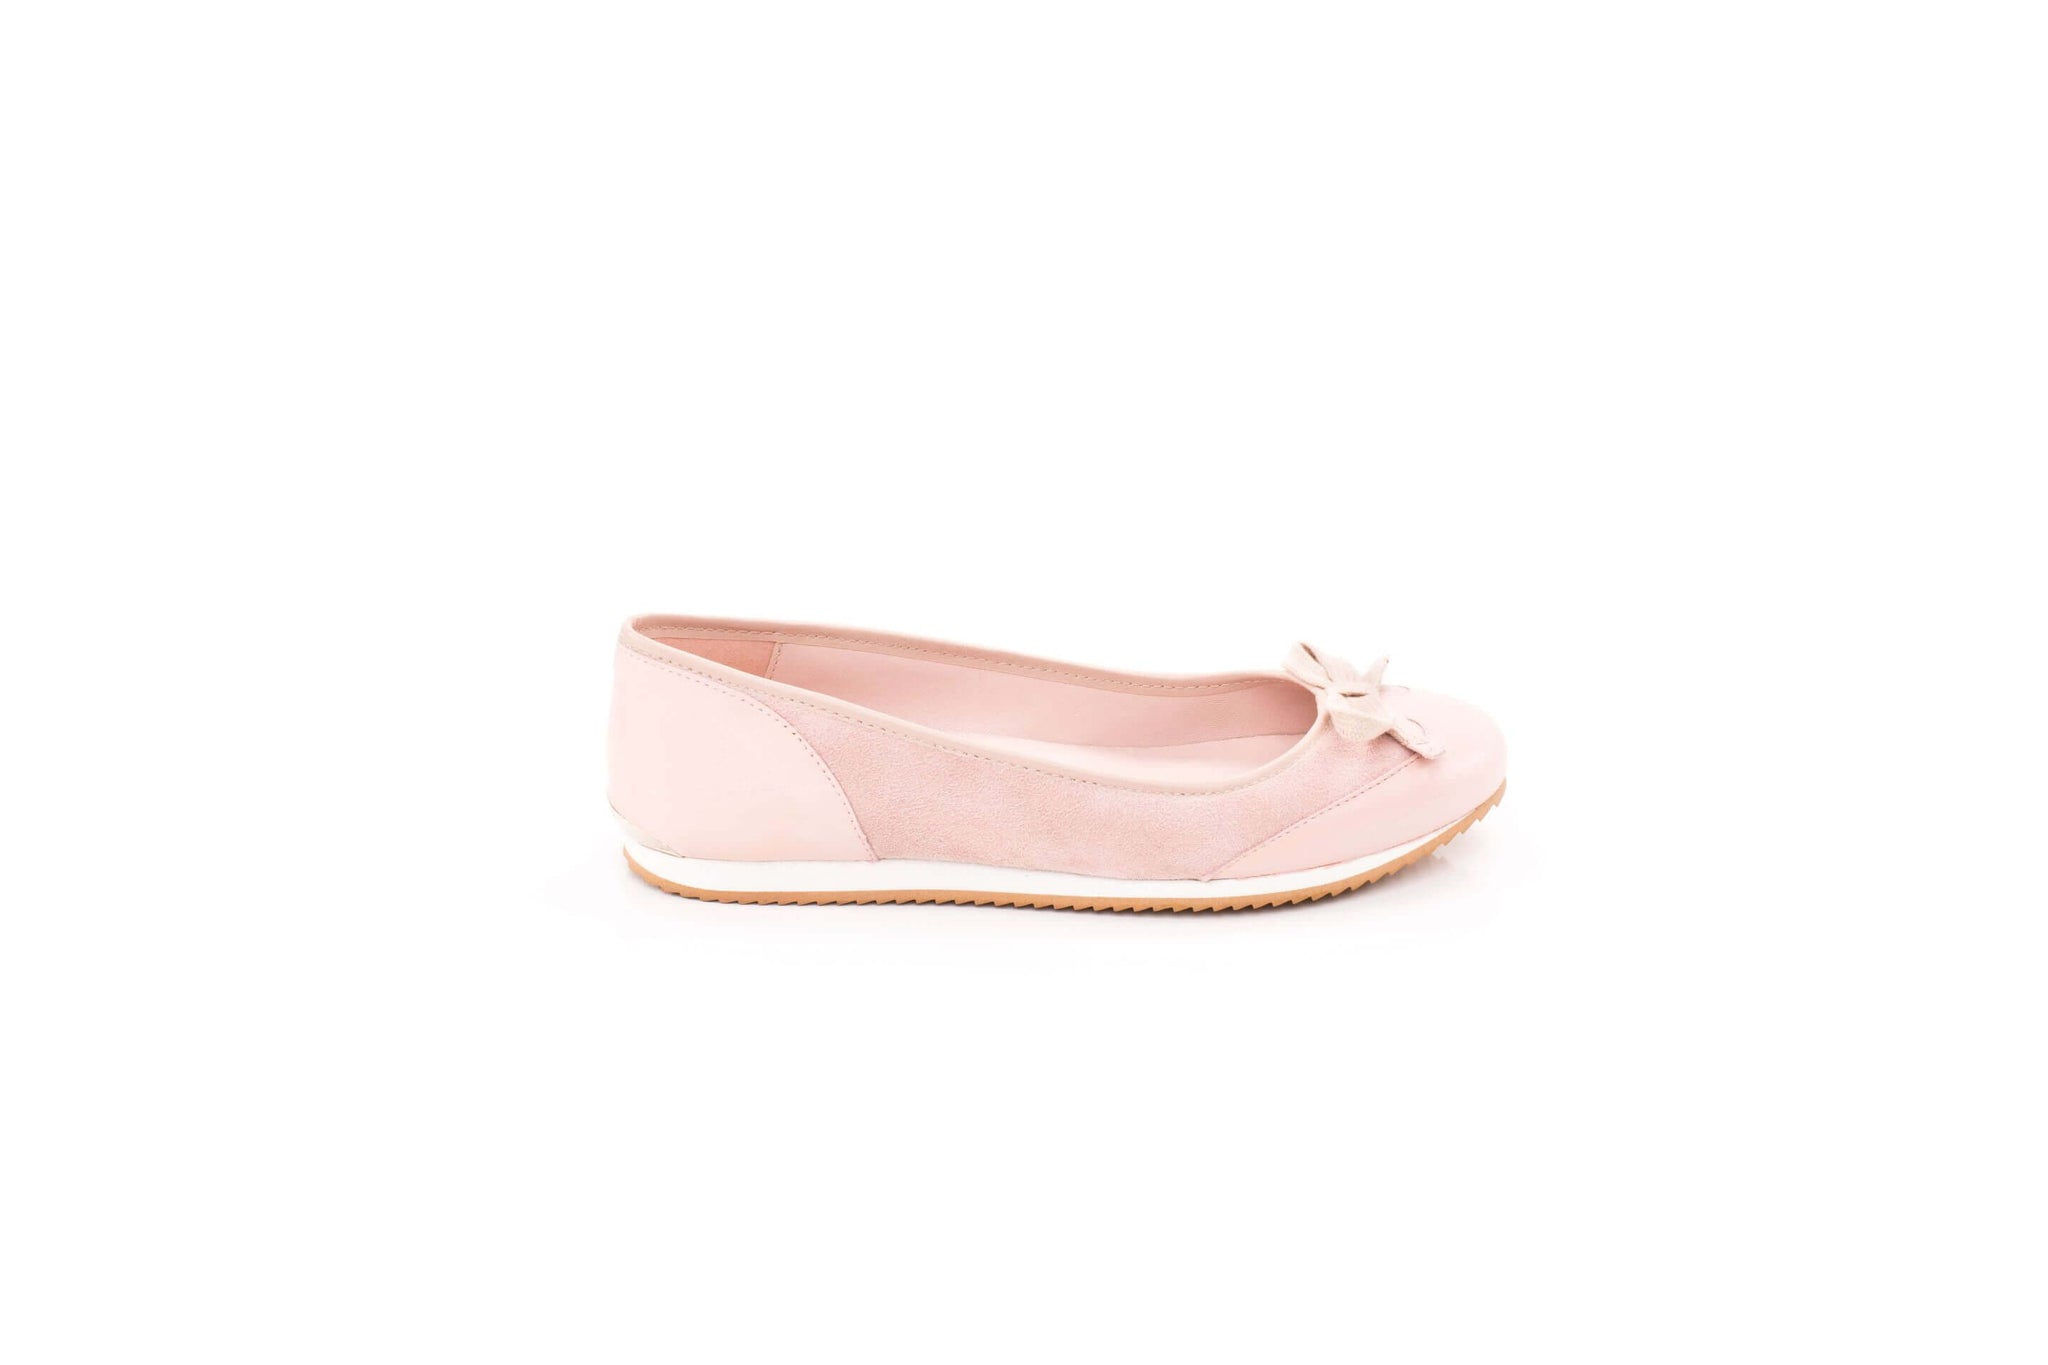 Blush or nude sneakerpump by Sloafer - the elegance and simplicity of a ballet pump, the comfort and support of a sneaker.